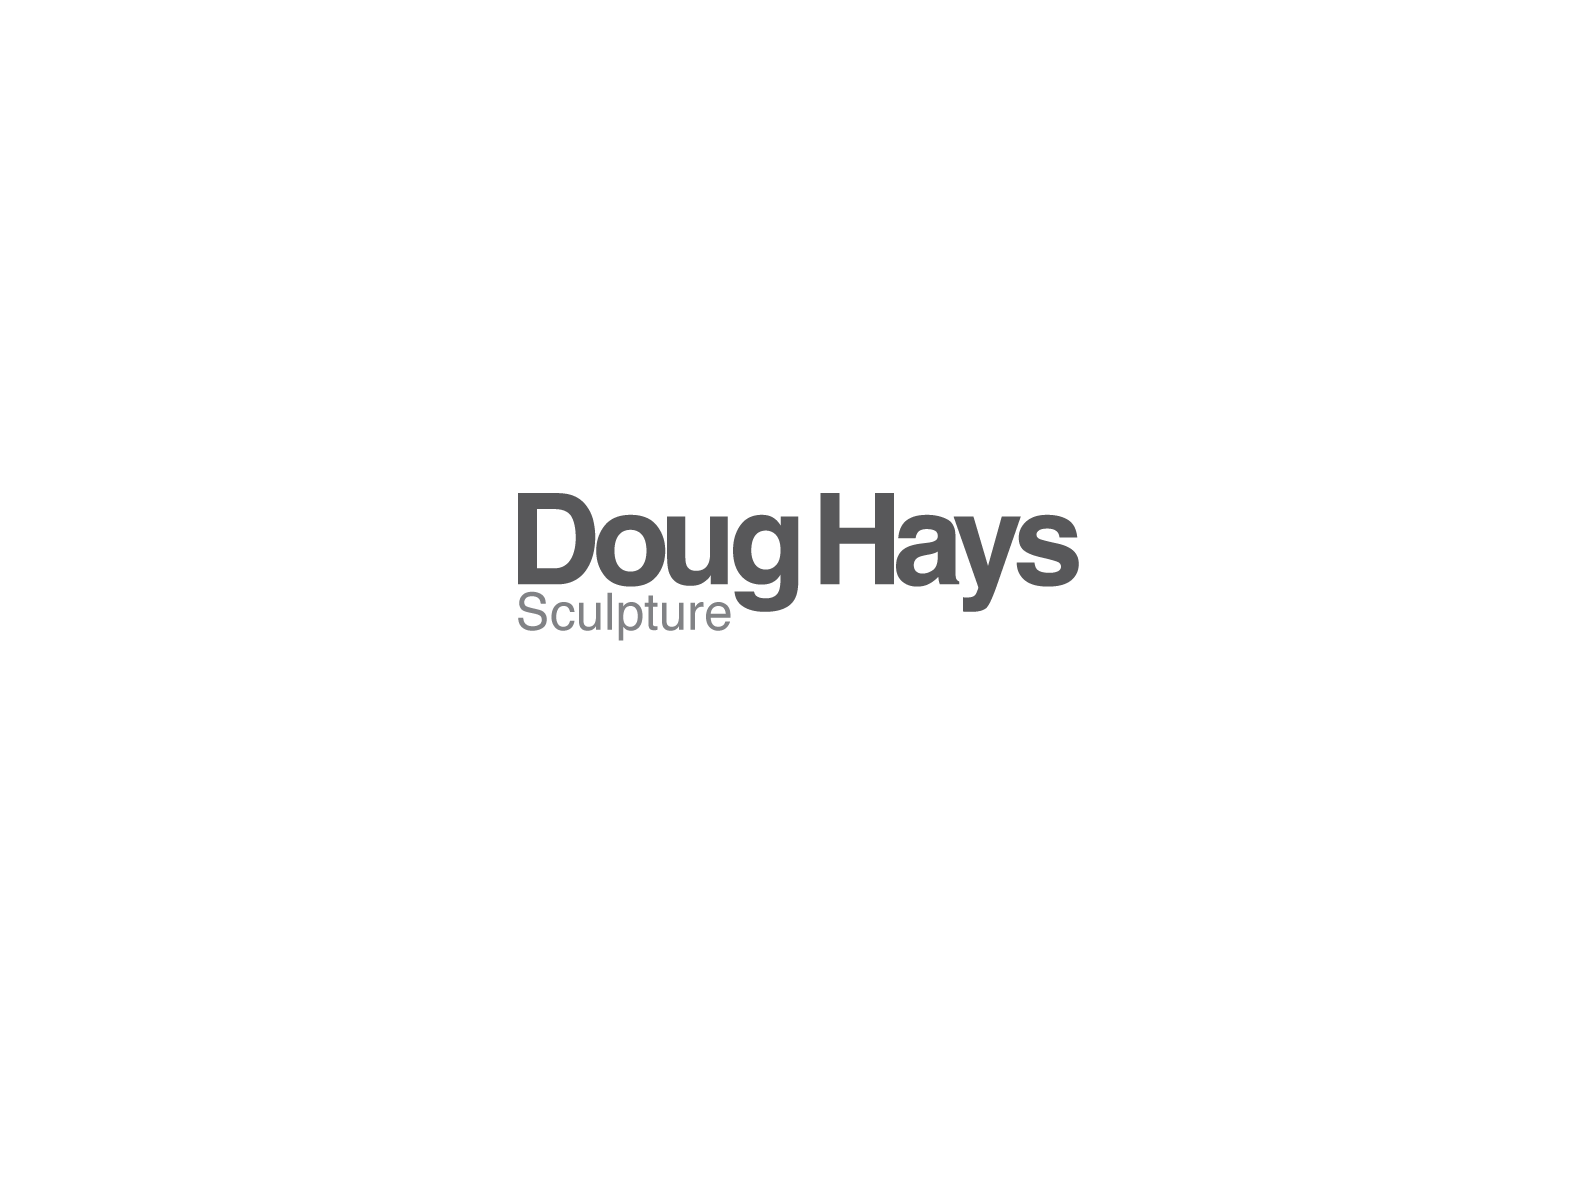 DougHays-LogoScreen-Gray1500